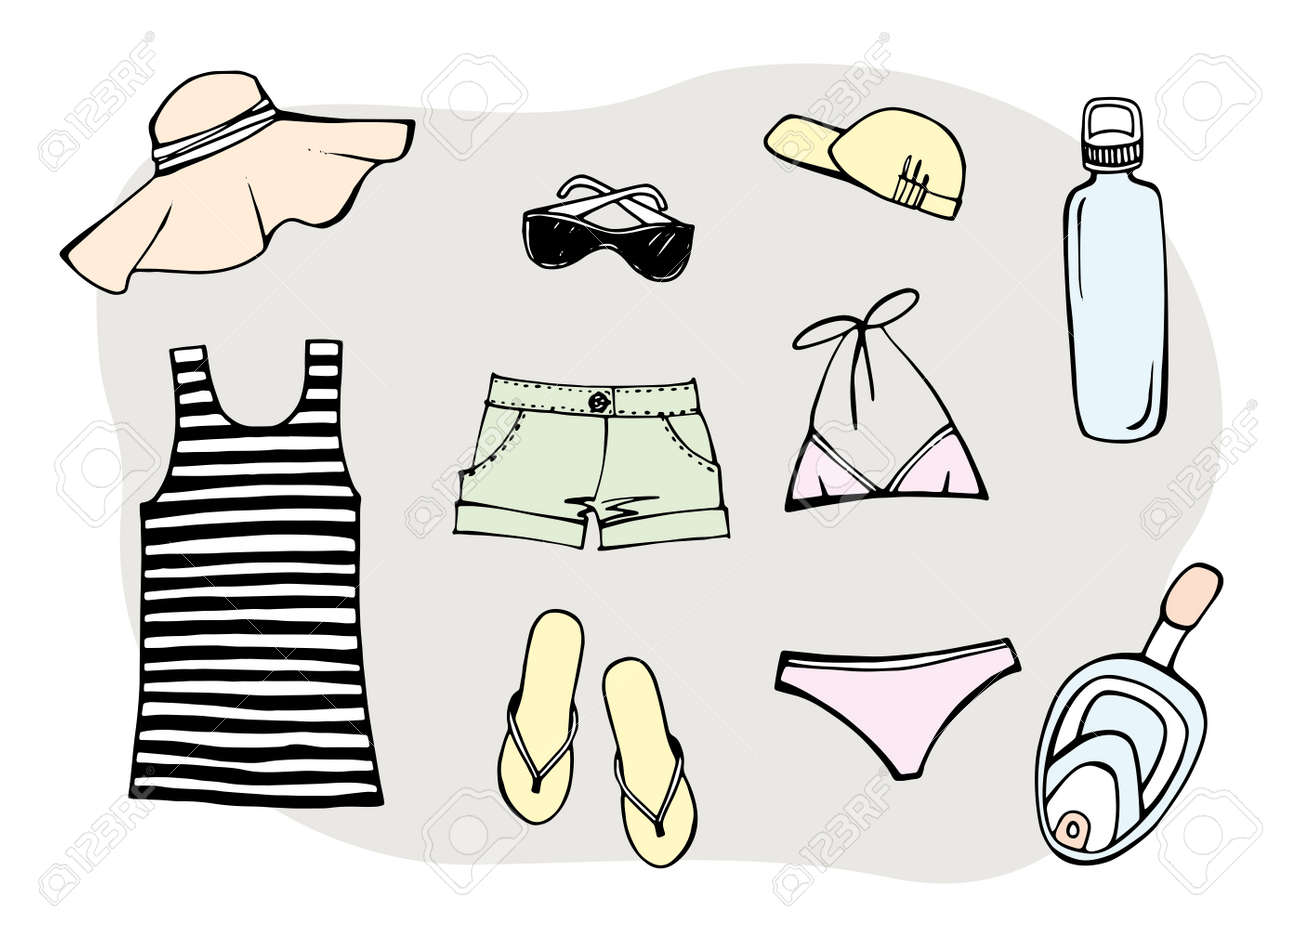 Most popular clothing on vacation. Summer beach set. Striped sleeveless tank top, sun hat, sunglasses, slippers, swimsuit and summer shorts. Hand drawn sketch. Colorful Vector illustration on white. - 169460676